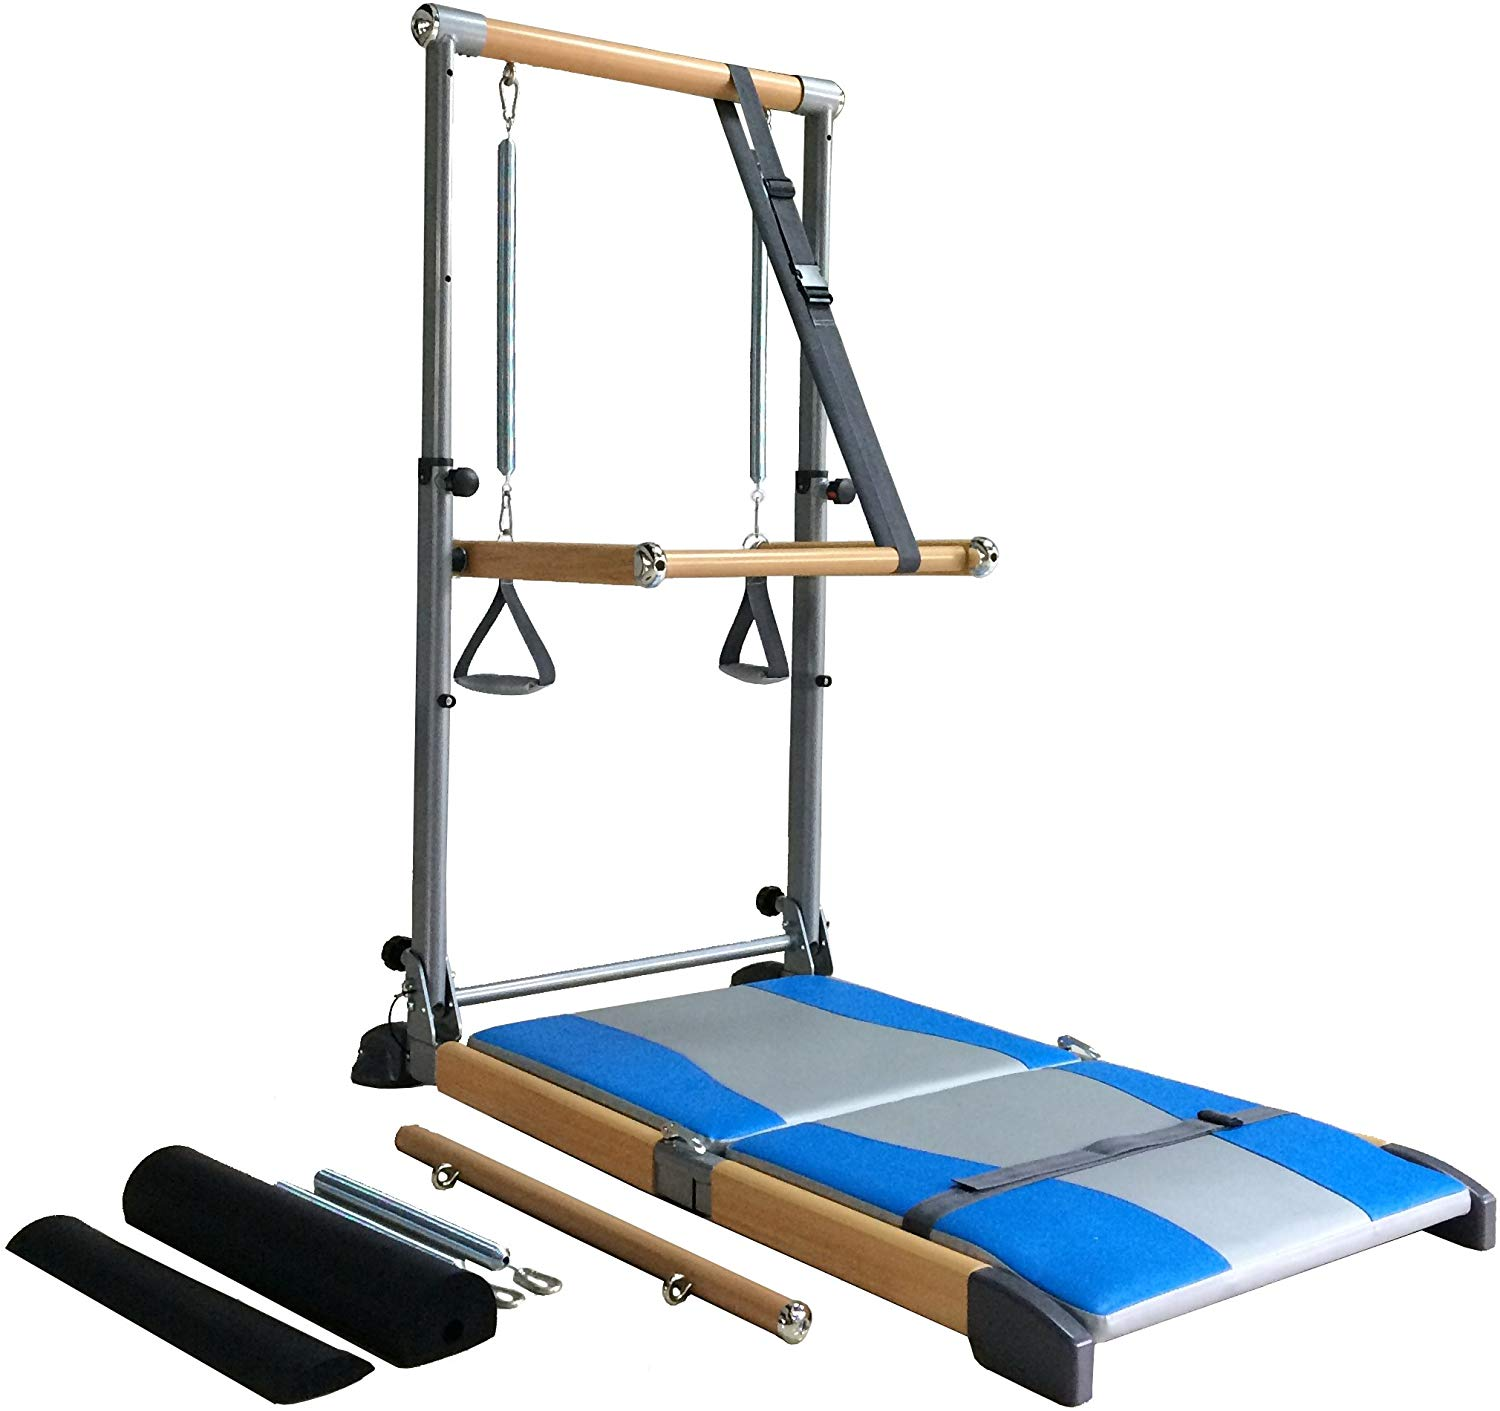 4. Supreme Pilates Pro Machine | Home Pilates Machines